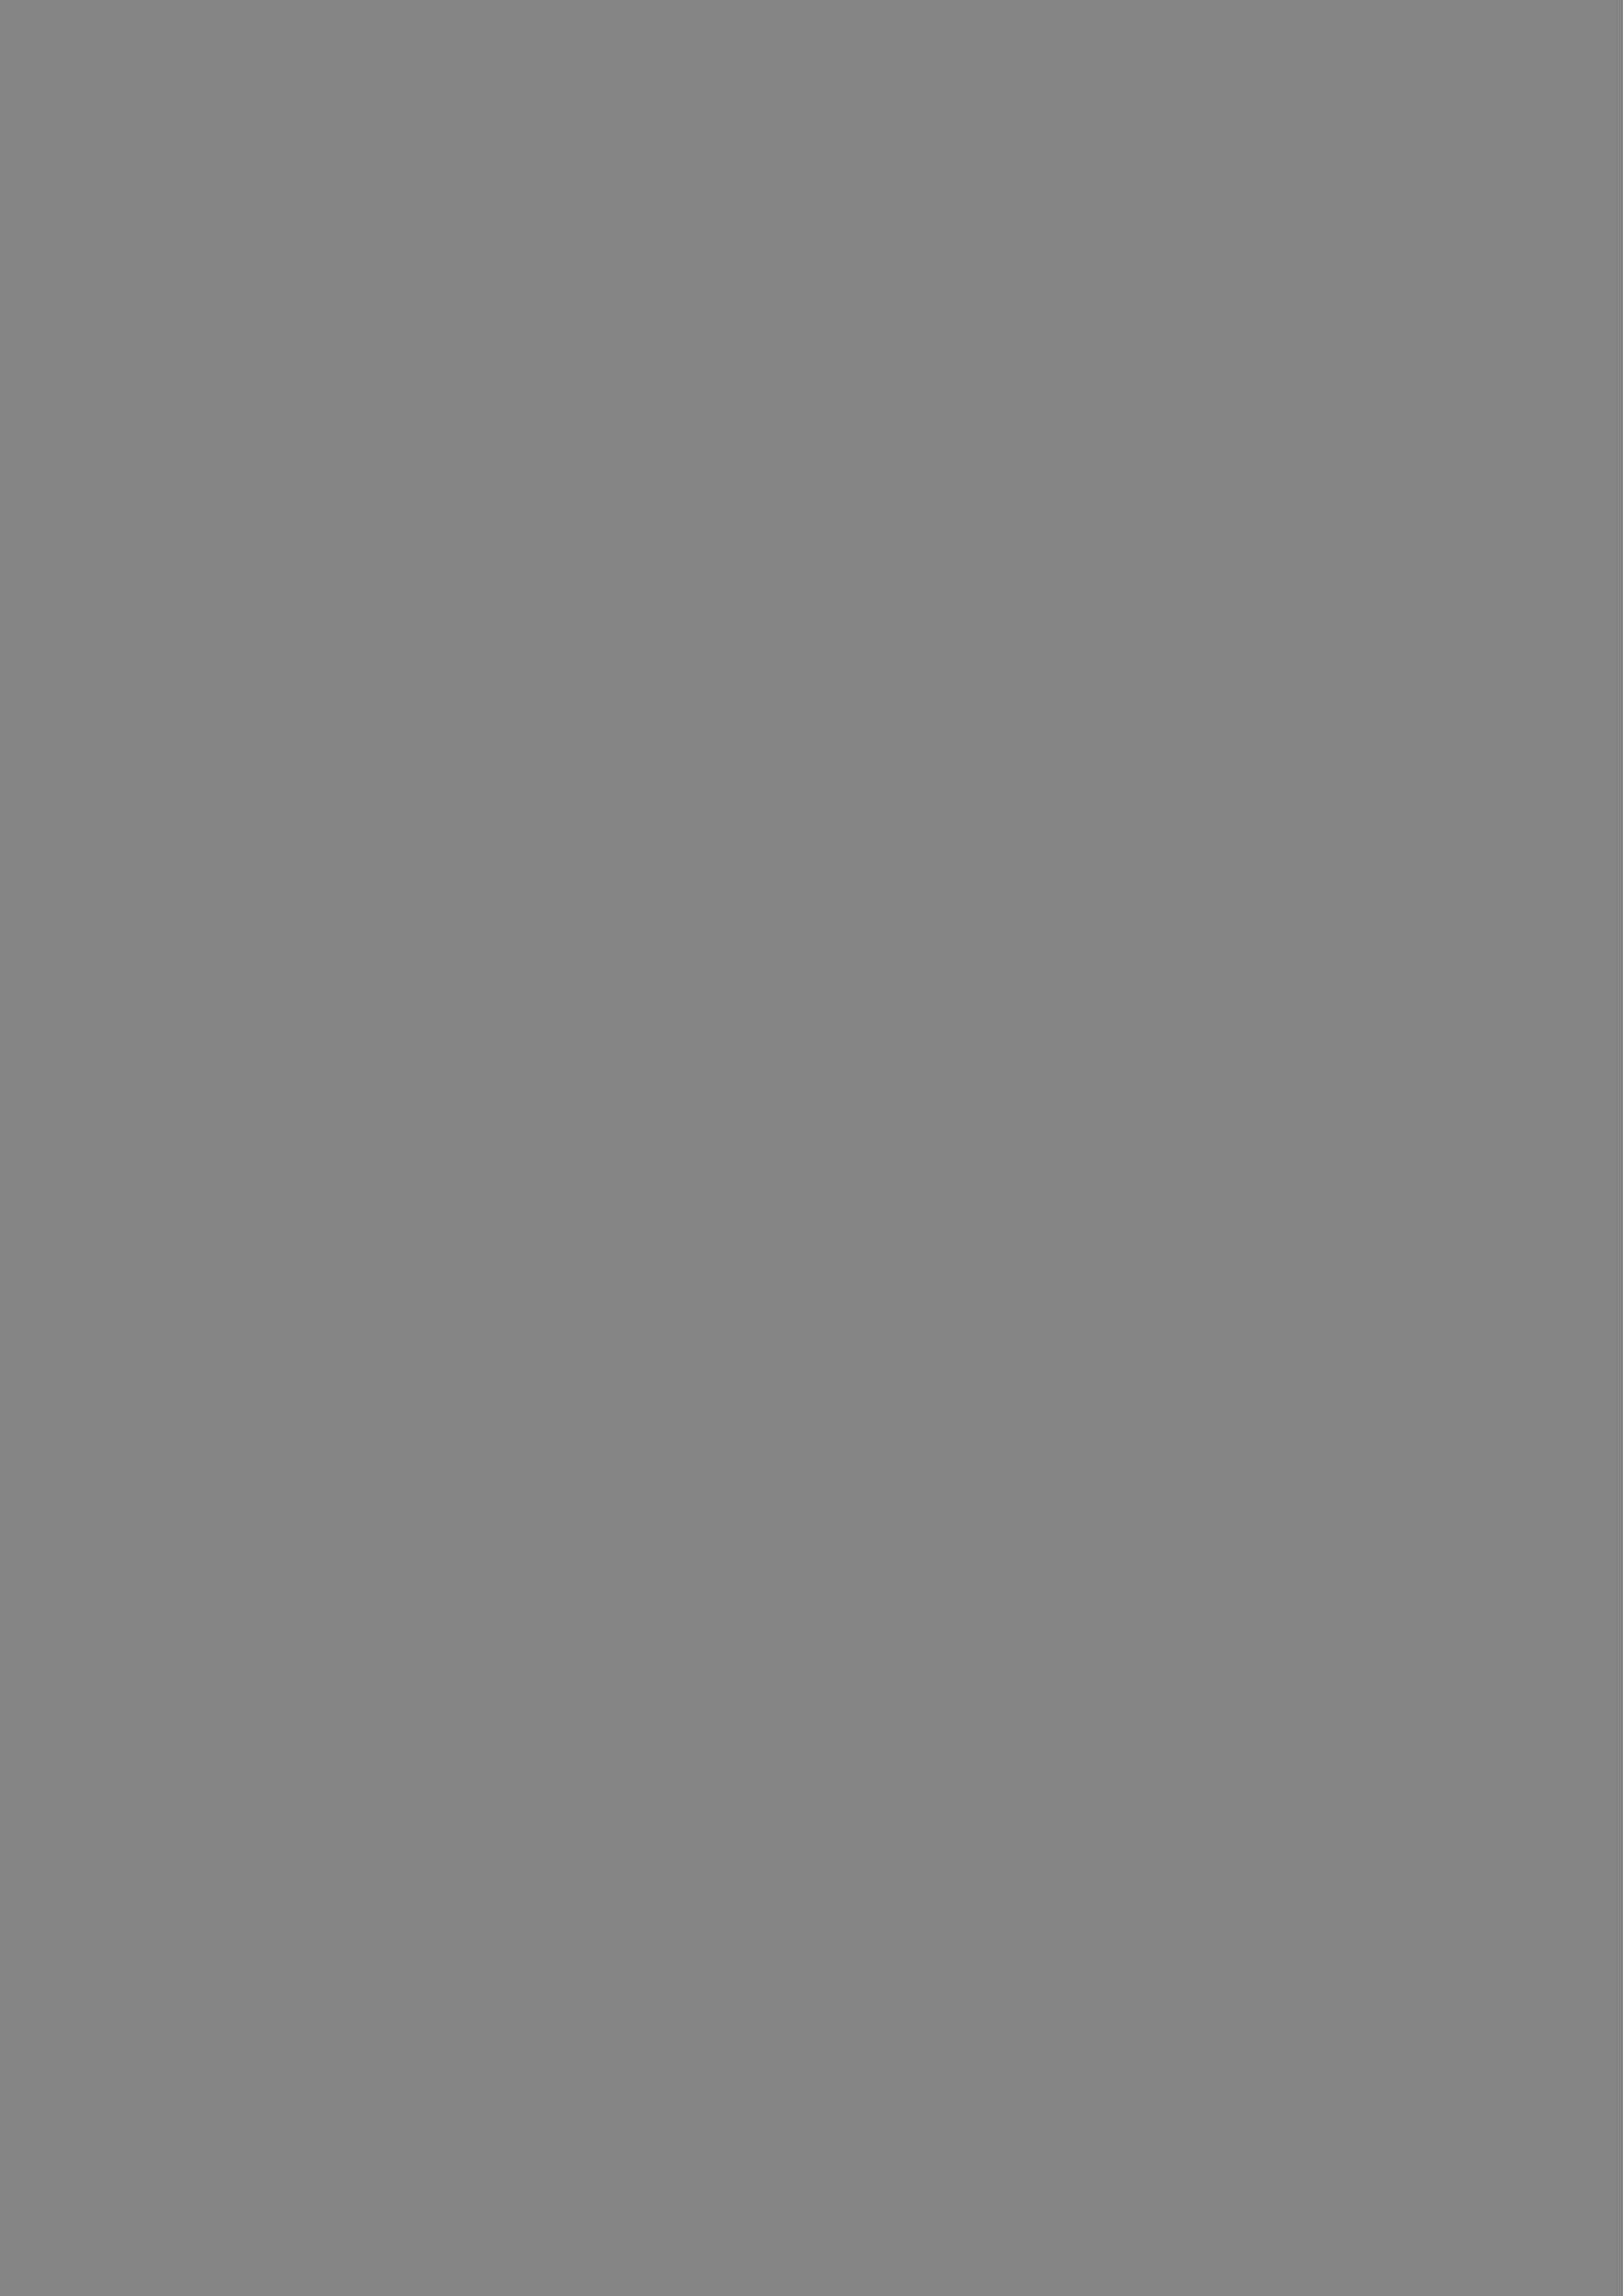 2480x3508 Old Silver Solid Color Background